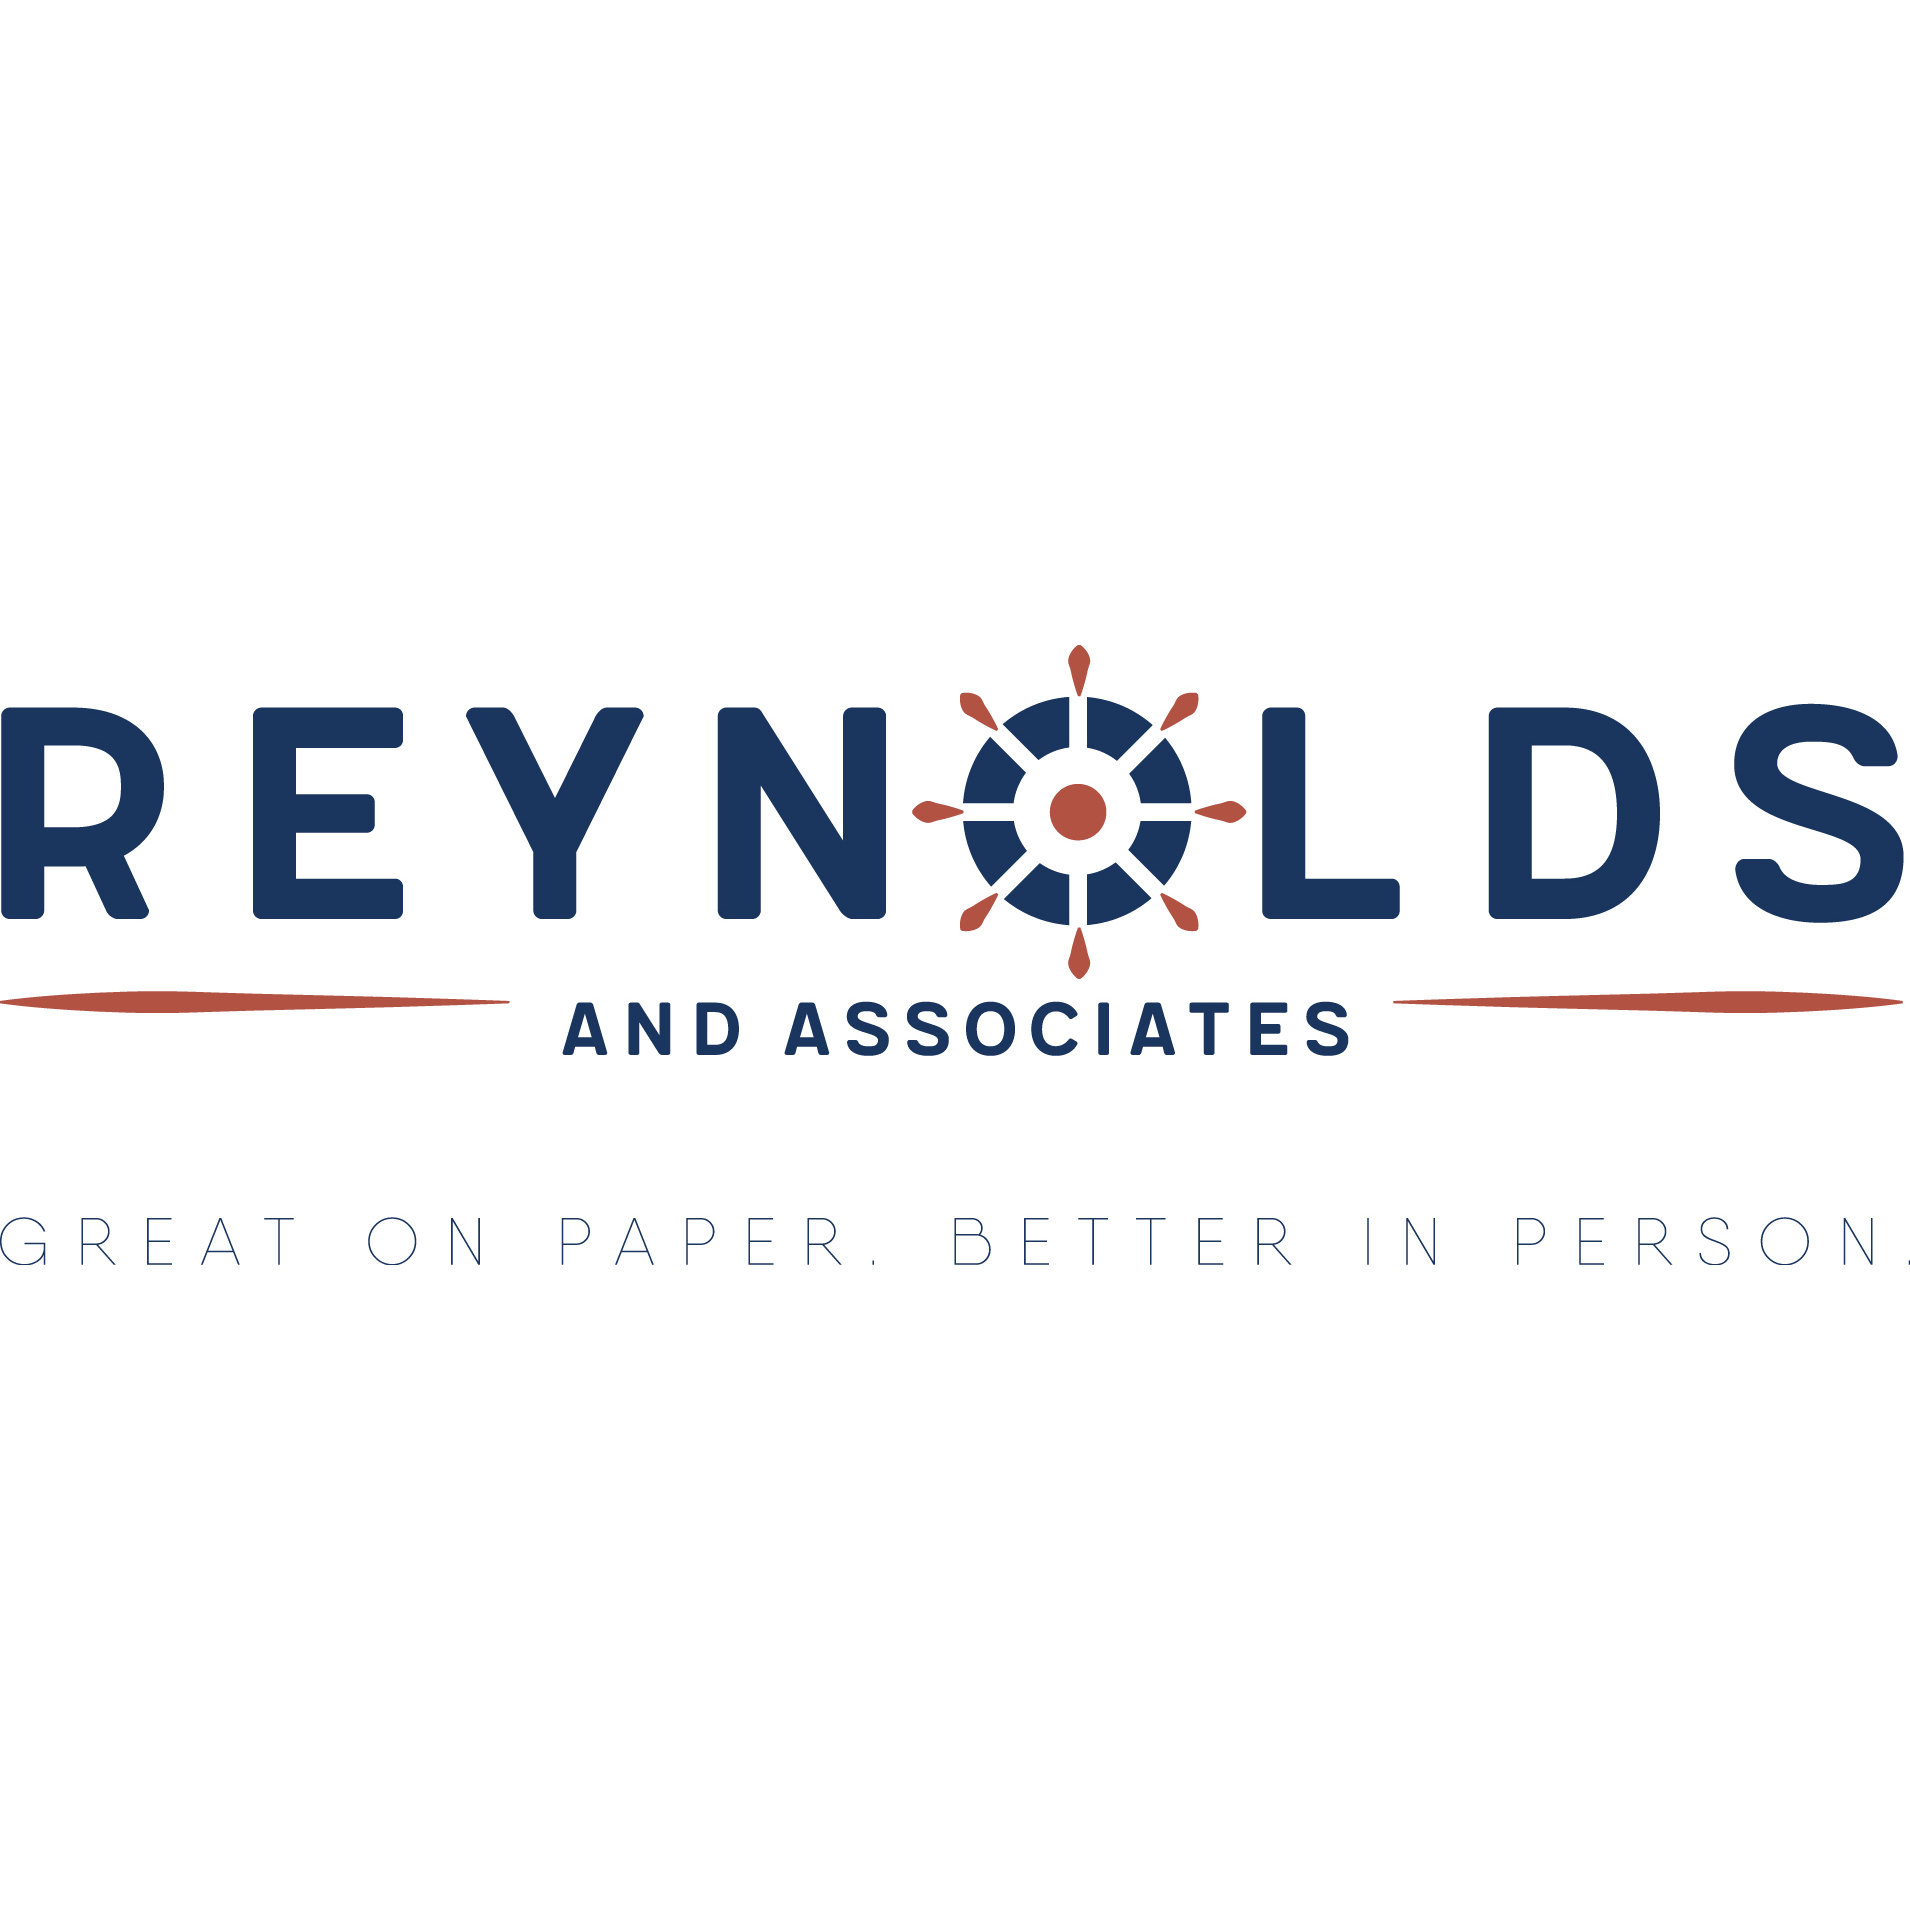 Reynolds & Assoc - Houston, TX - Accounting